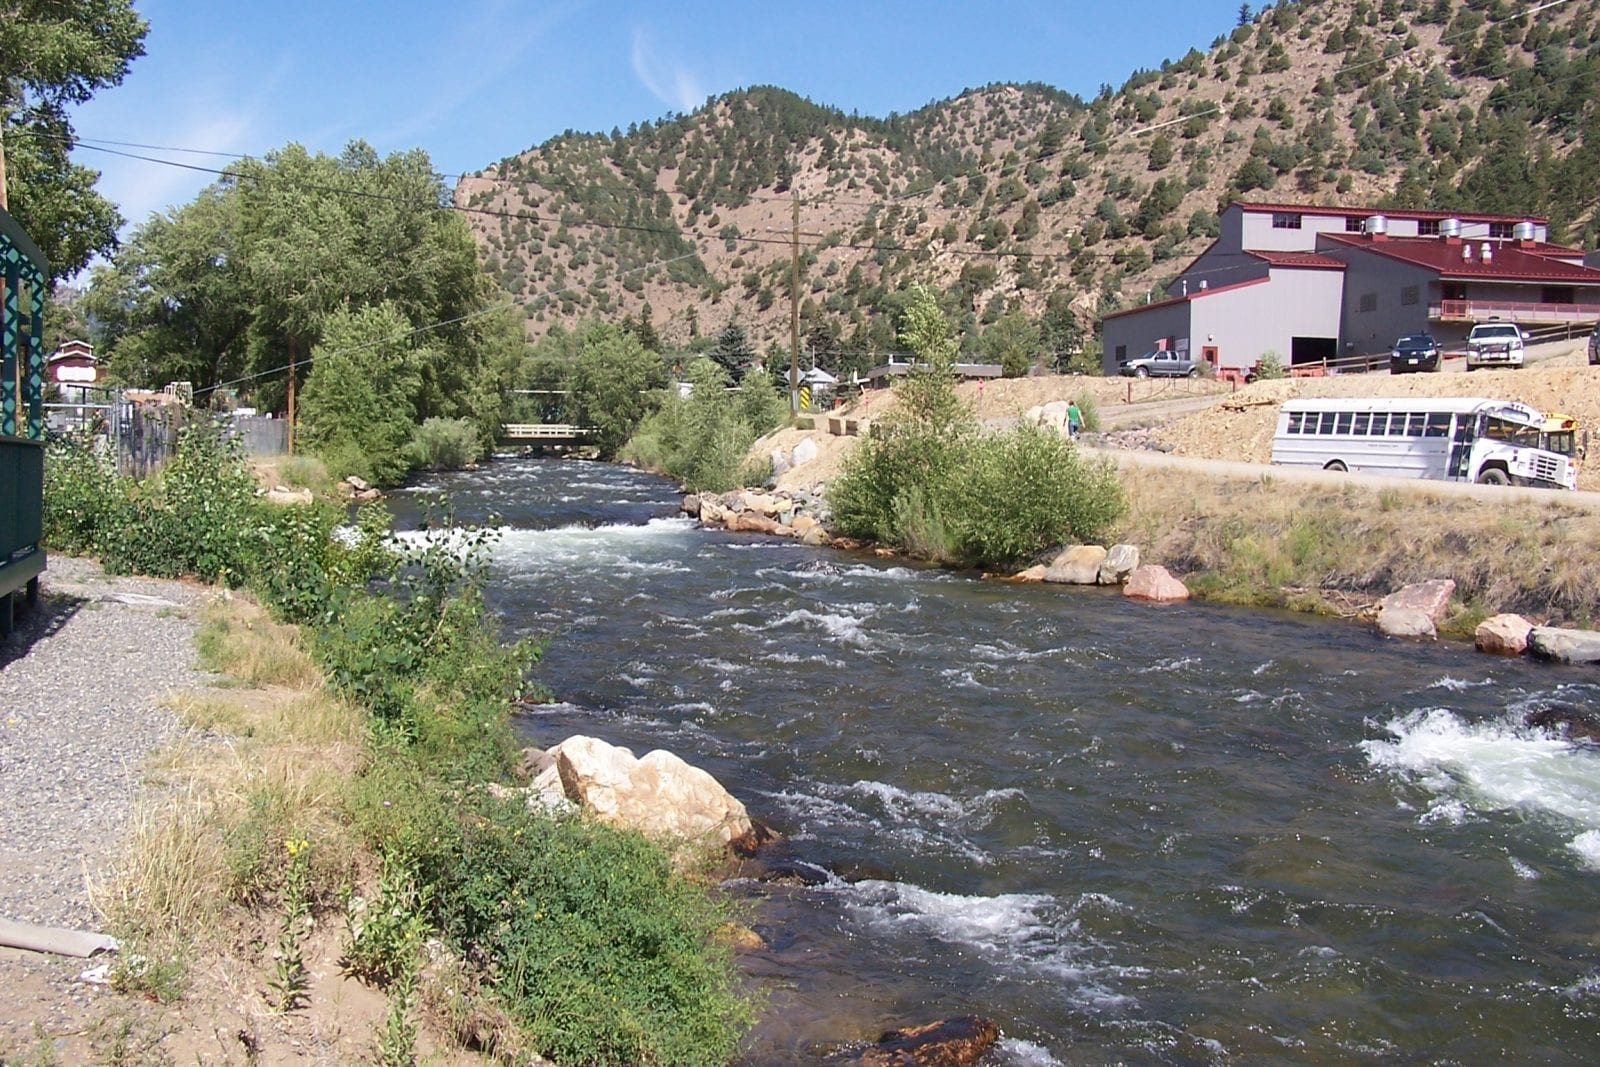 Image of the Arkansas River flowing through mountains